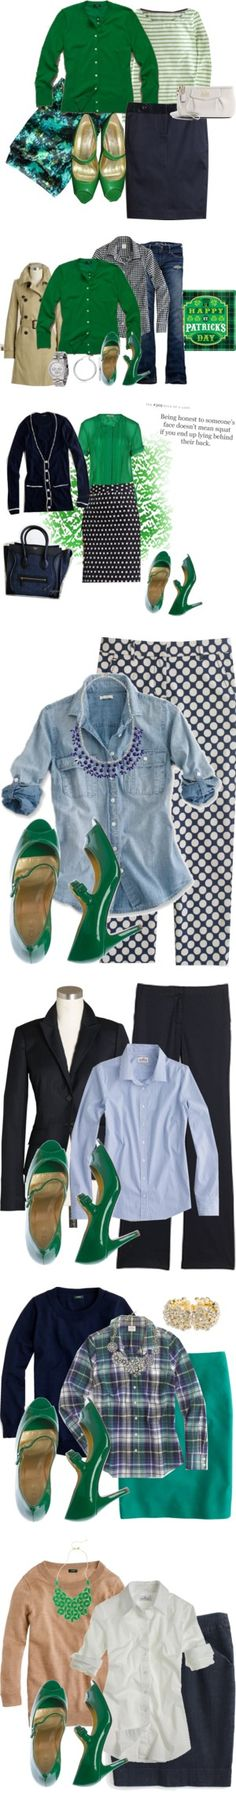 Green Mary Janes by my4boys on Polyvore featuring мода, J.Crew, Coach, American Eagle Outfitters, MICHAEL Michael Kors, Blue Nile, By Malene Birger, Banana Republic, CÉLINE and Etiquette